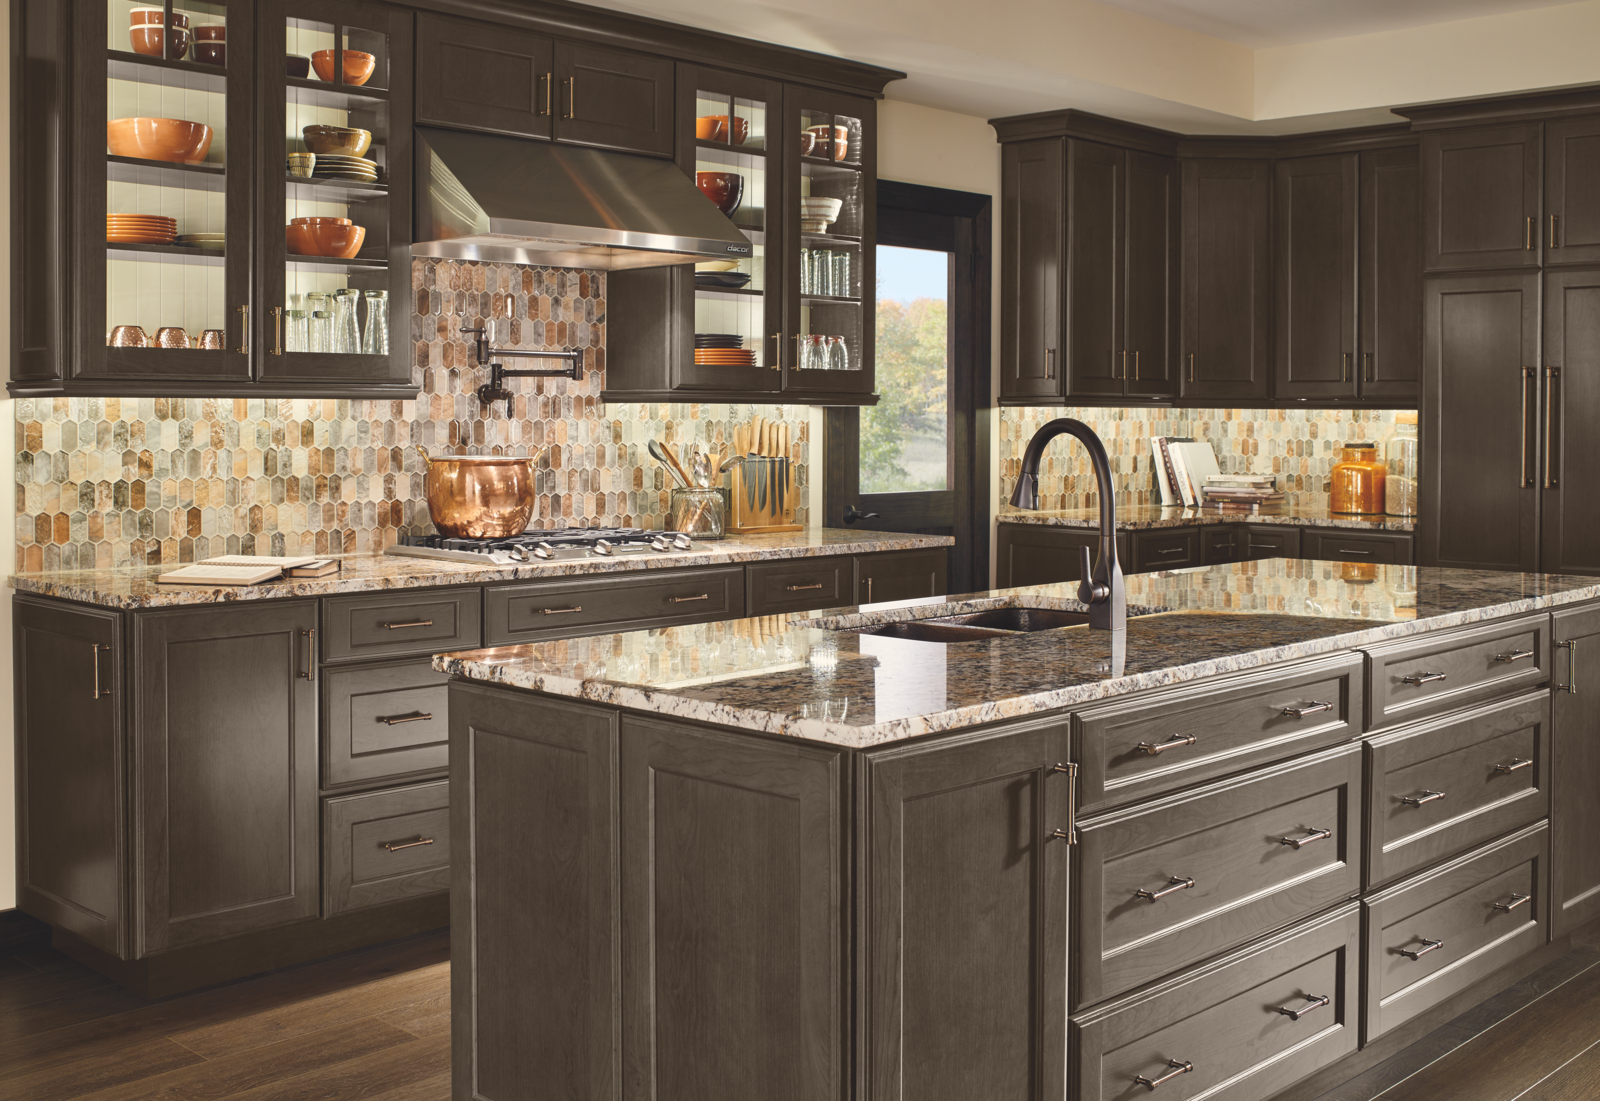 Photo 5 of 8 in 8 Ways to Refresh and Personalize Your Kitchen